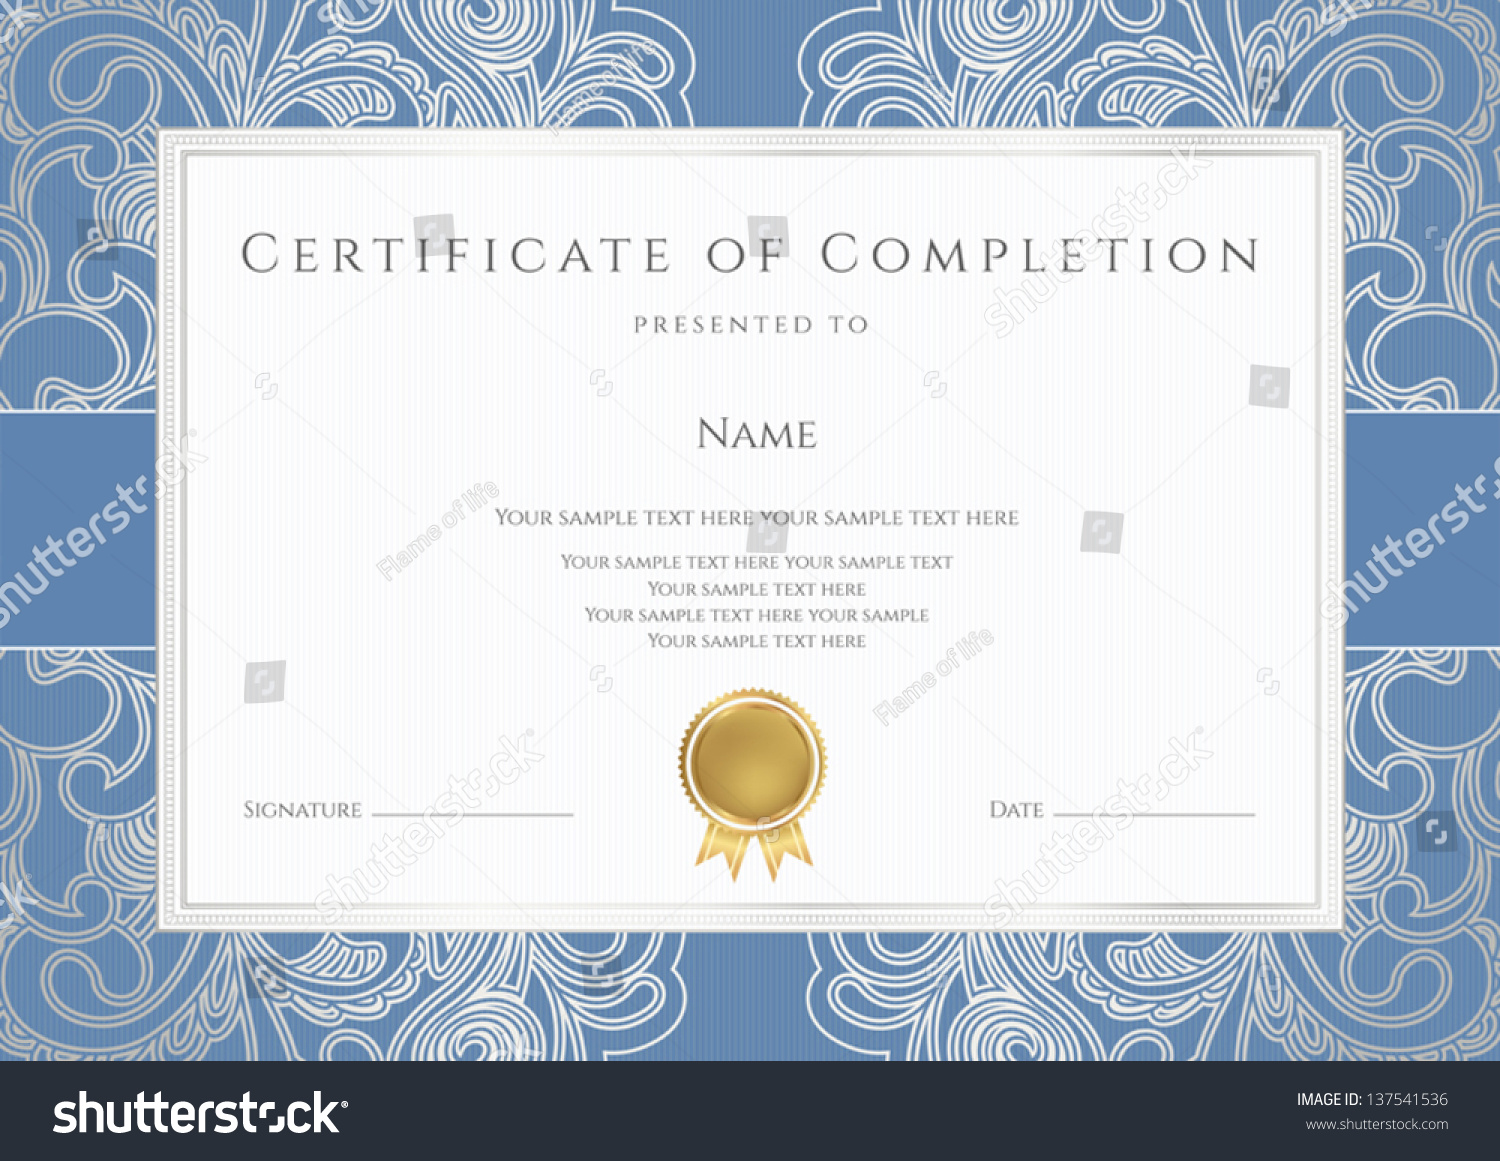 Horizontal certificate completion template floral pattern stock horizontal certificate of completion template with floral pattern watermarks blue border yelopaper Choice Image